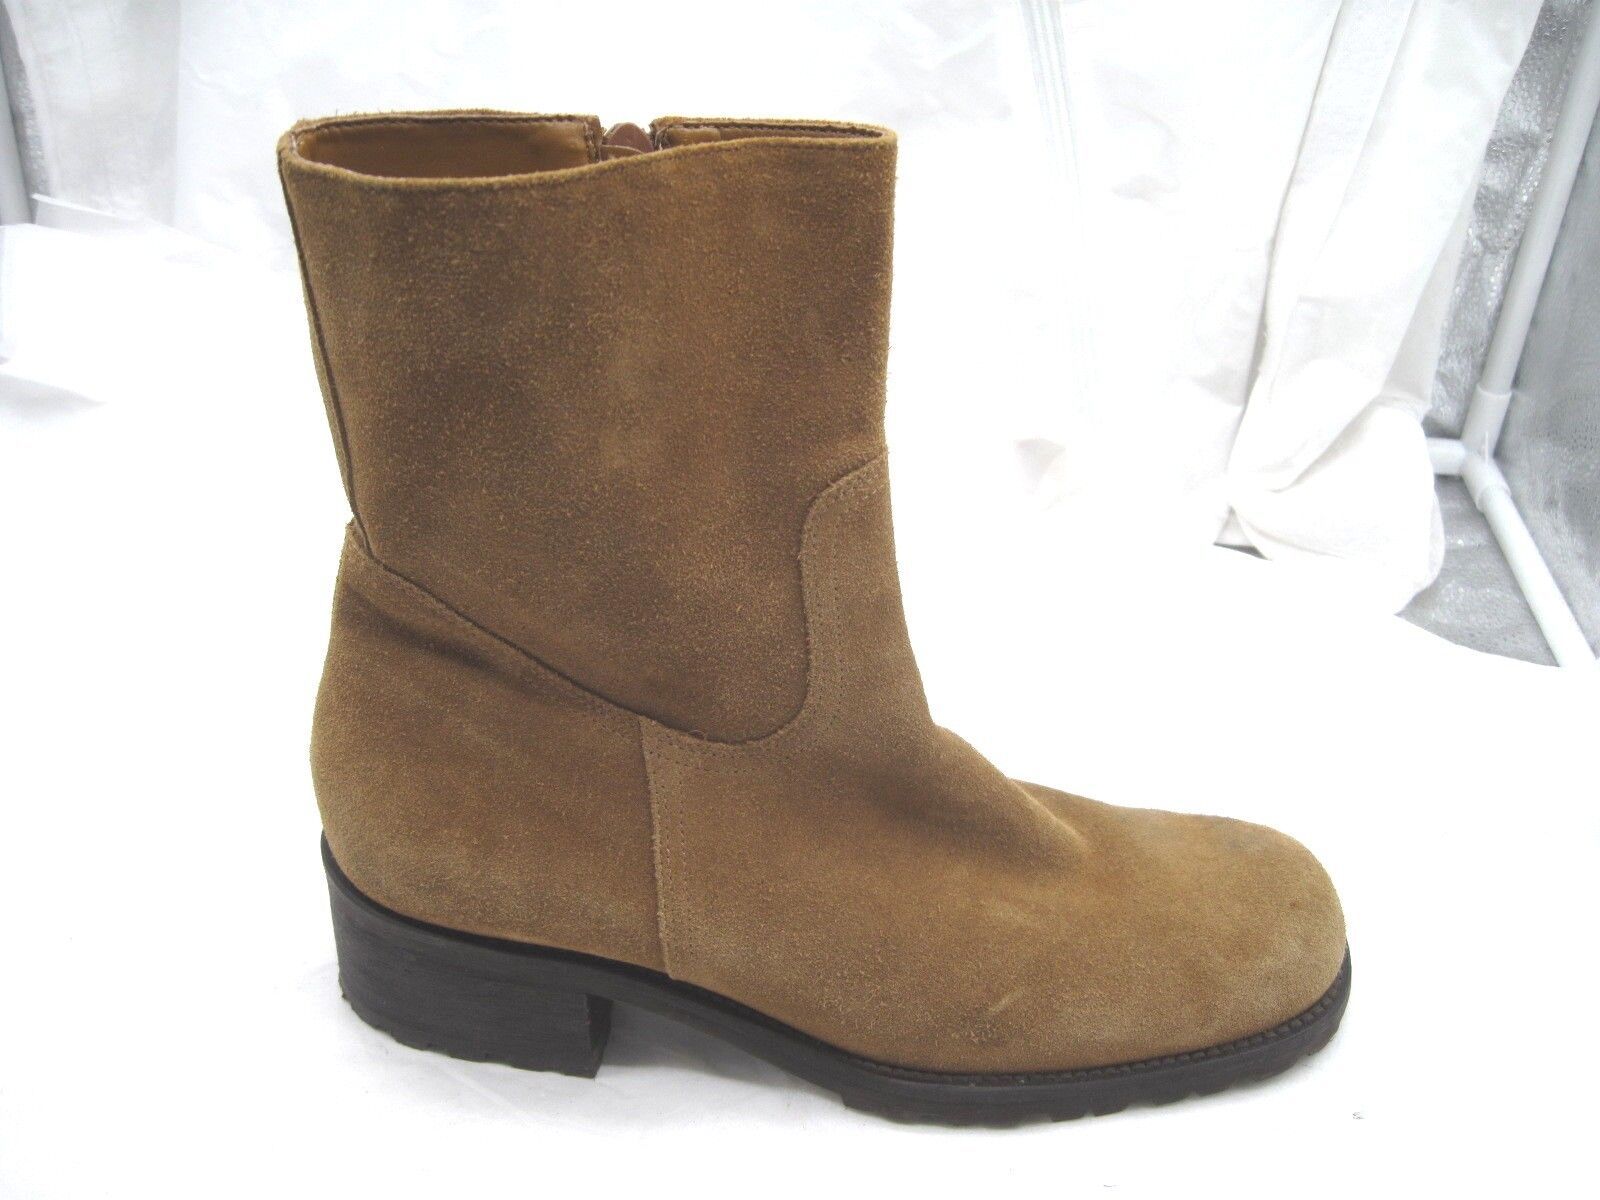 Eddie Bauer size 8M Brown suede ankle zip up boots womens ladies Boots shoes